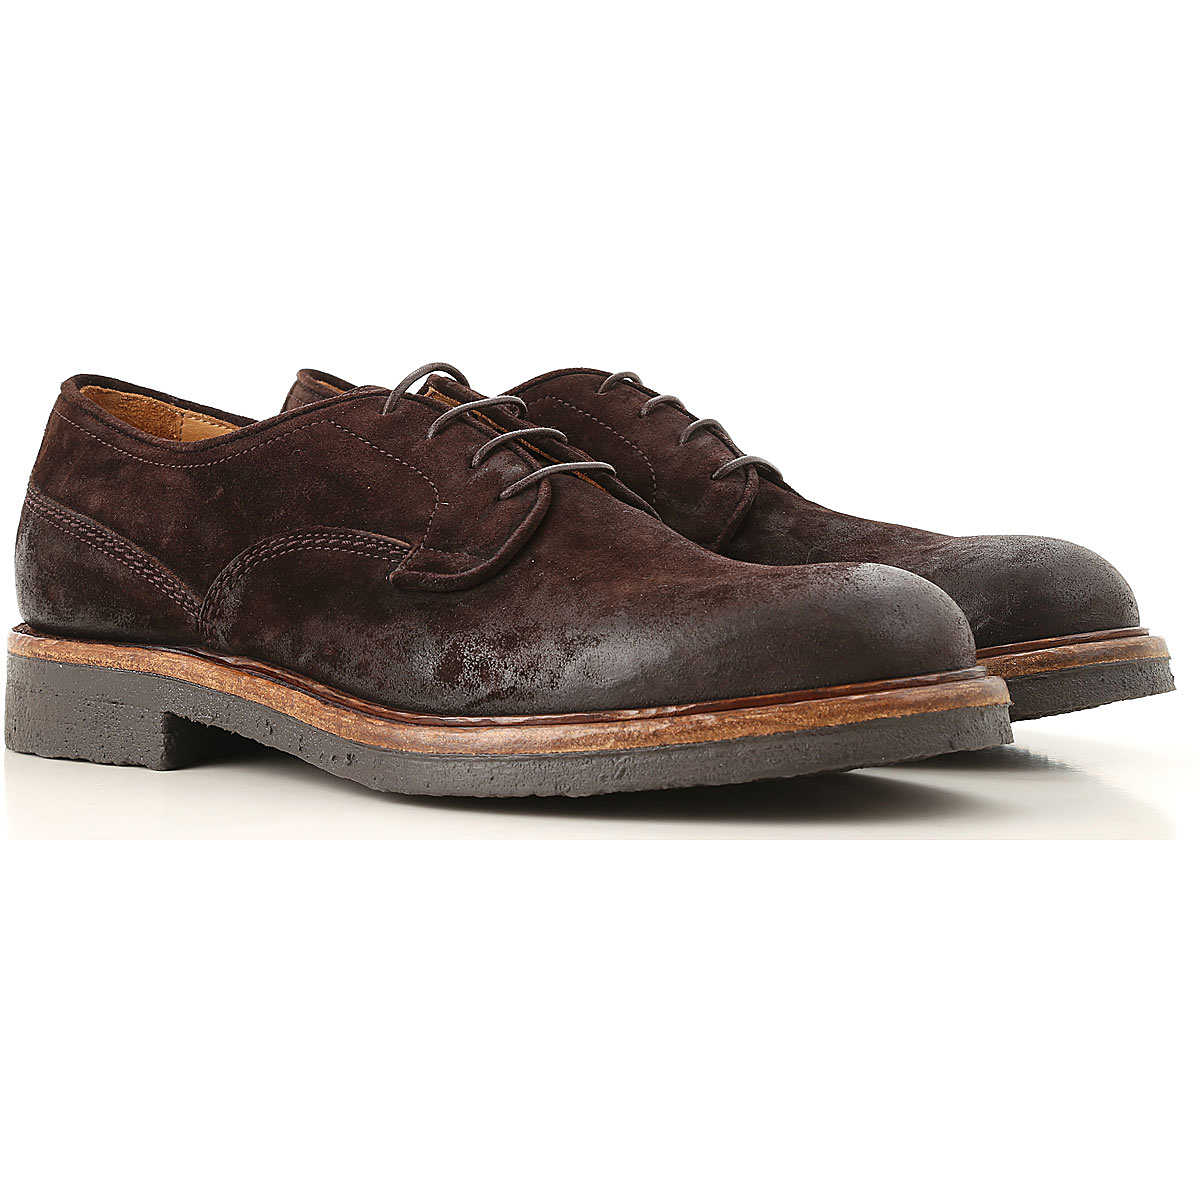 Corvari Lace Up Shoes for Men Oxfords Derbies and Brogues On Sale in Outlet DK - GOOFASH - Mens FORMAL SHOES